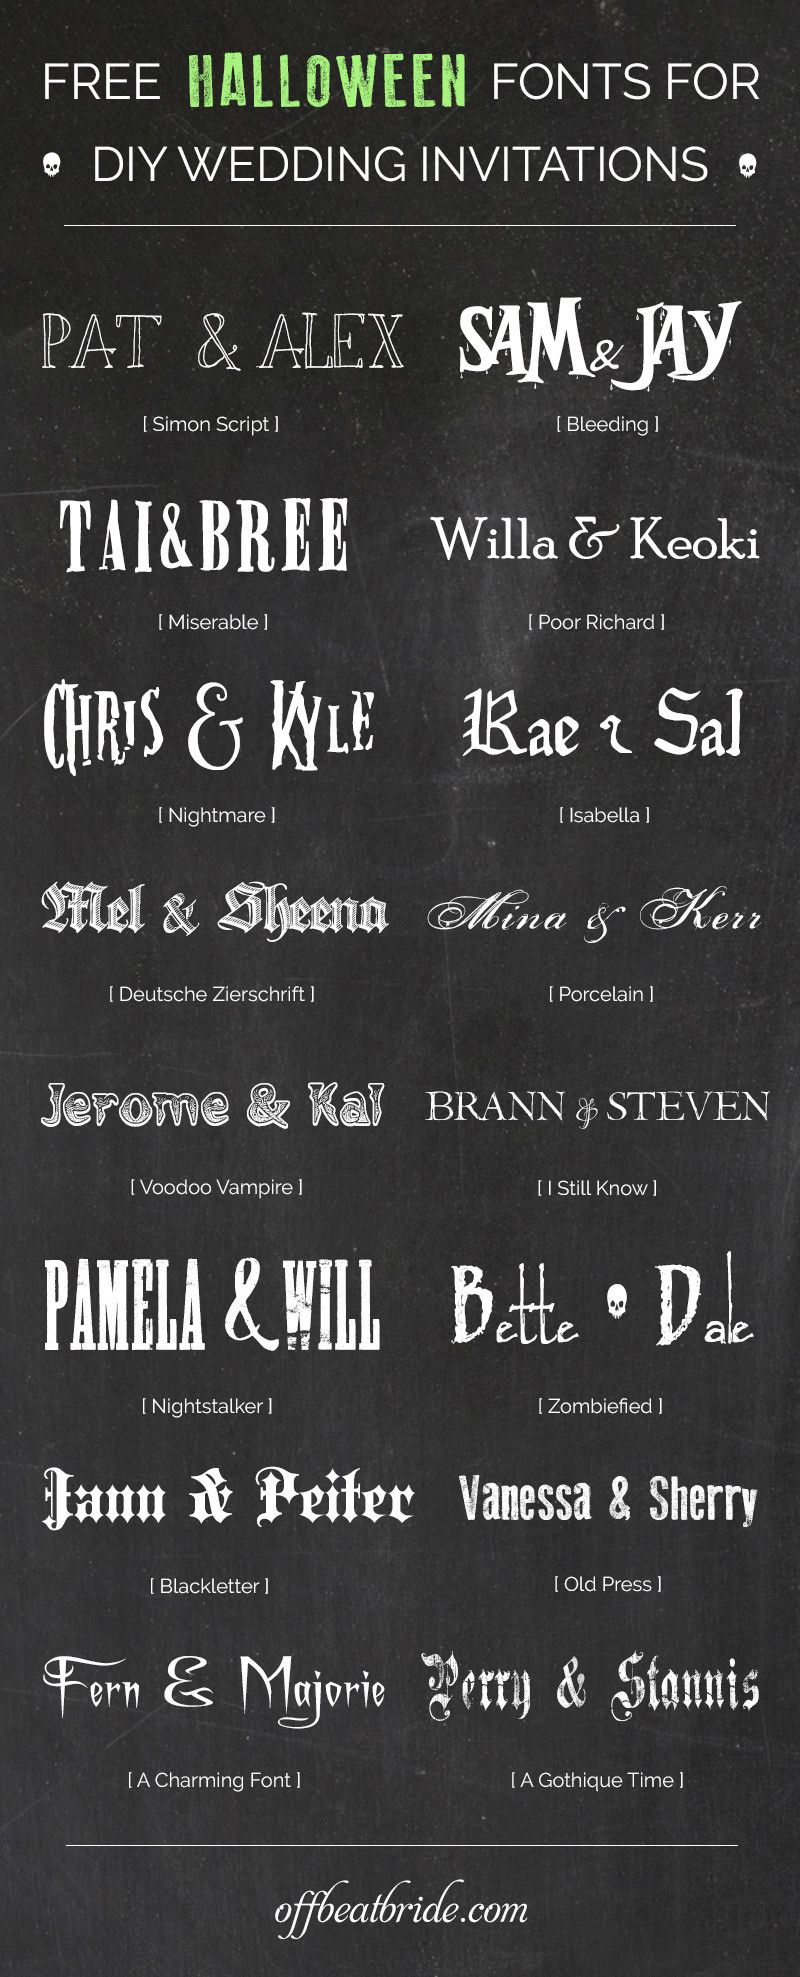 16 bewitching free Halloween fonts for scarily good DIY wedding ...